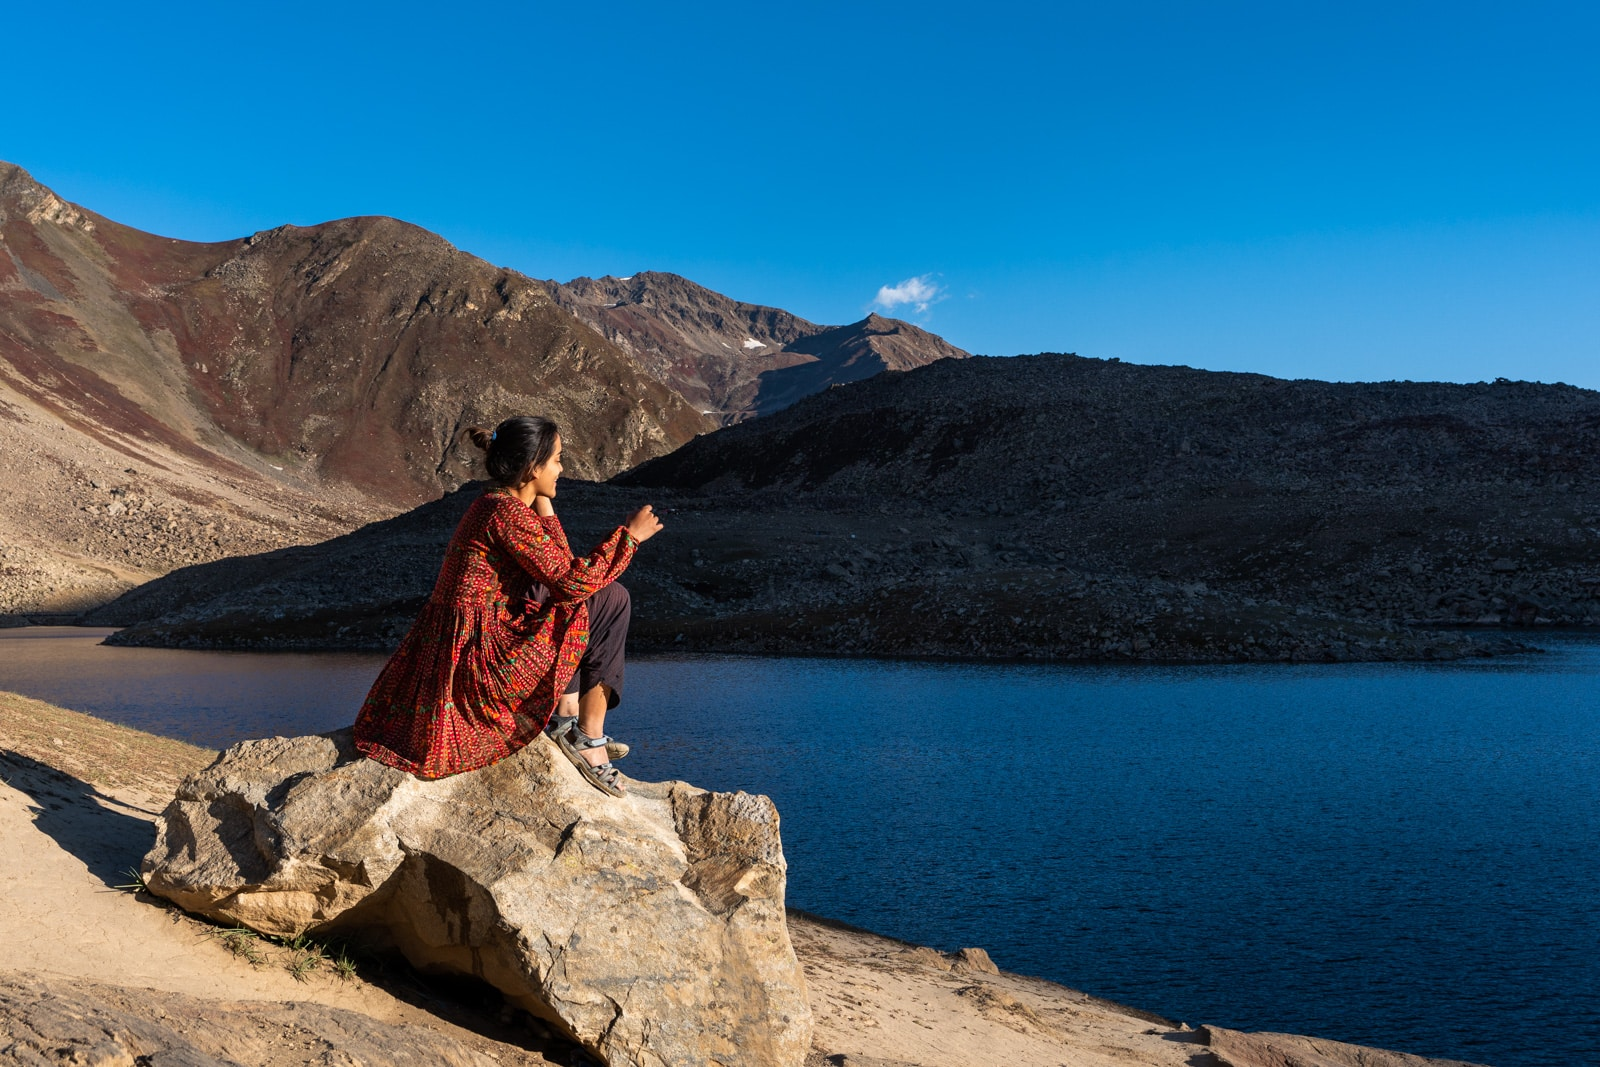 Female traveler at Lulusar Lake in Pakistan